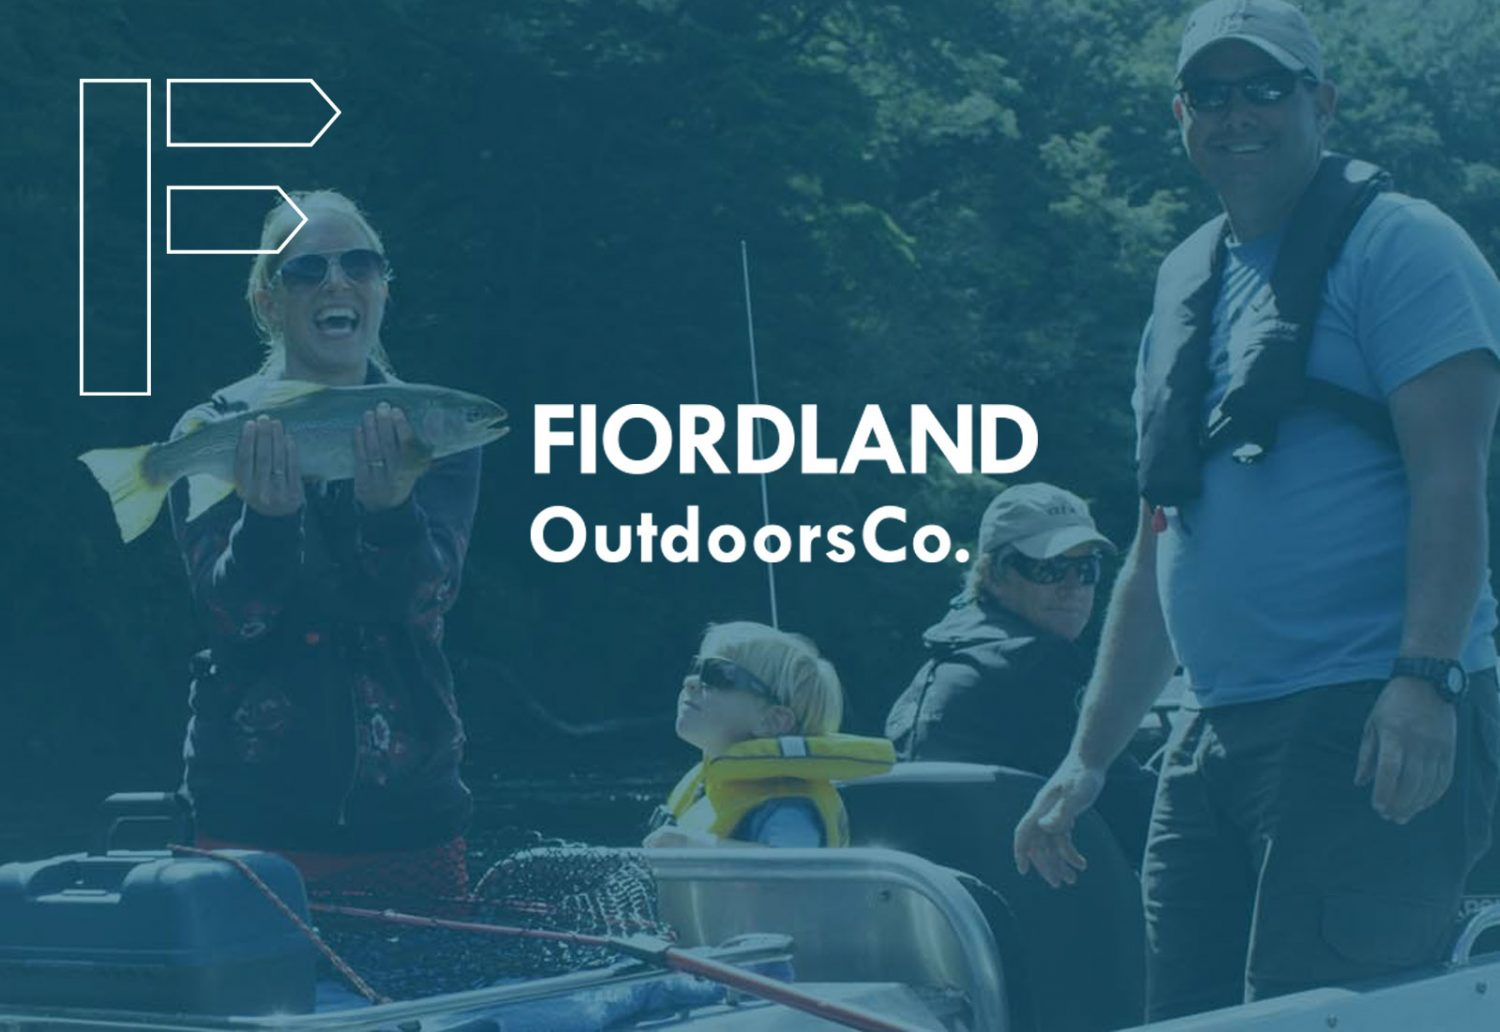 Fiorland Outdoors